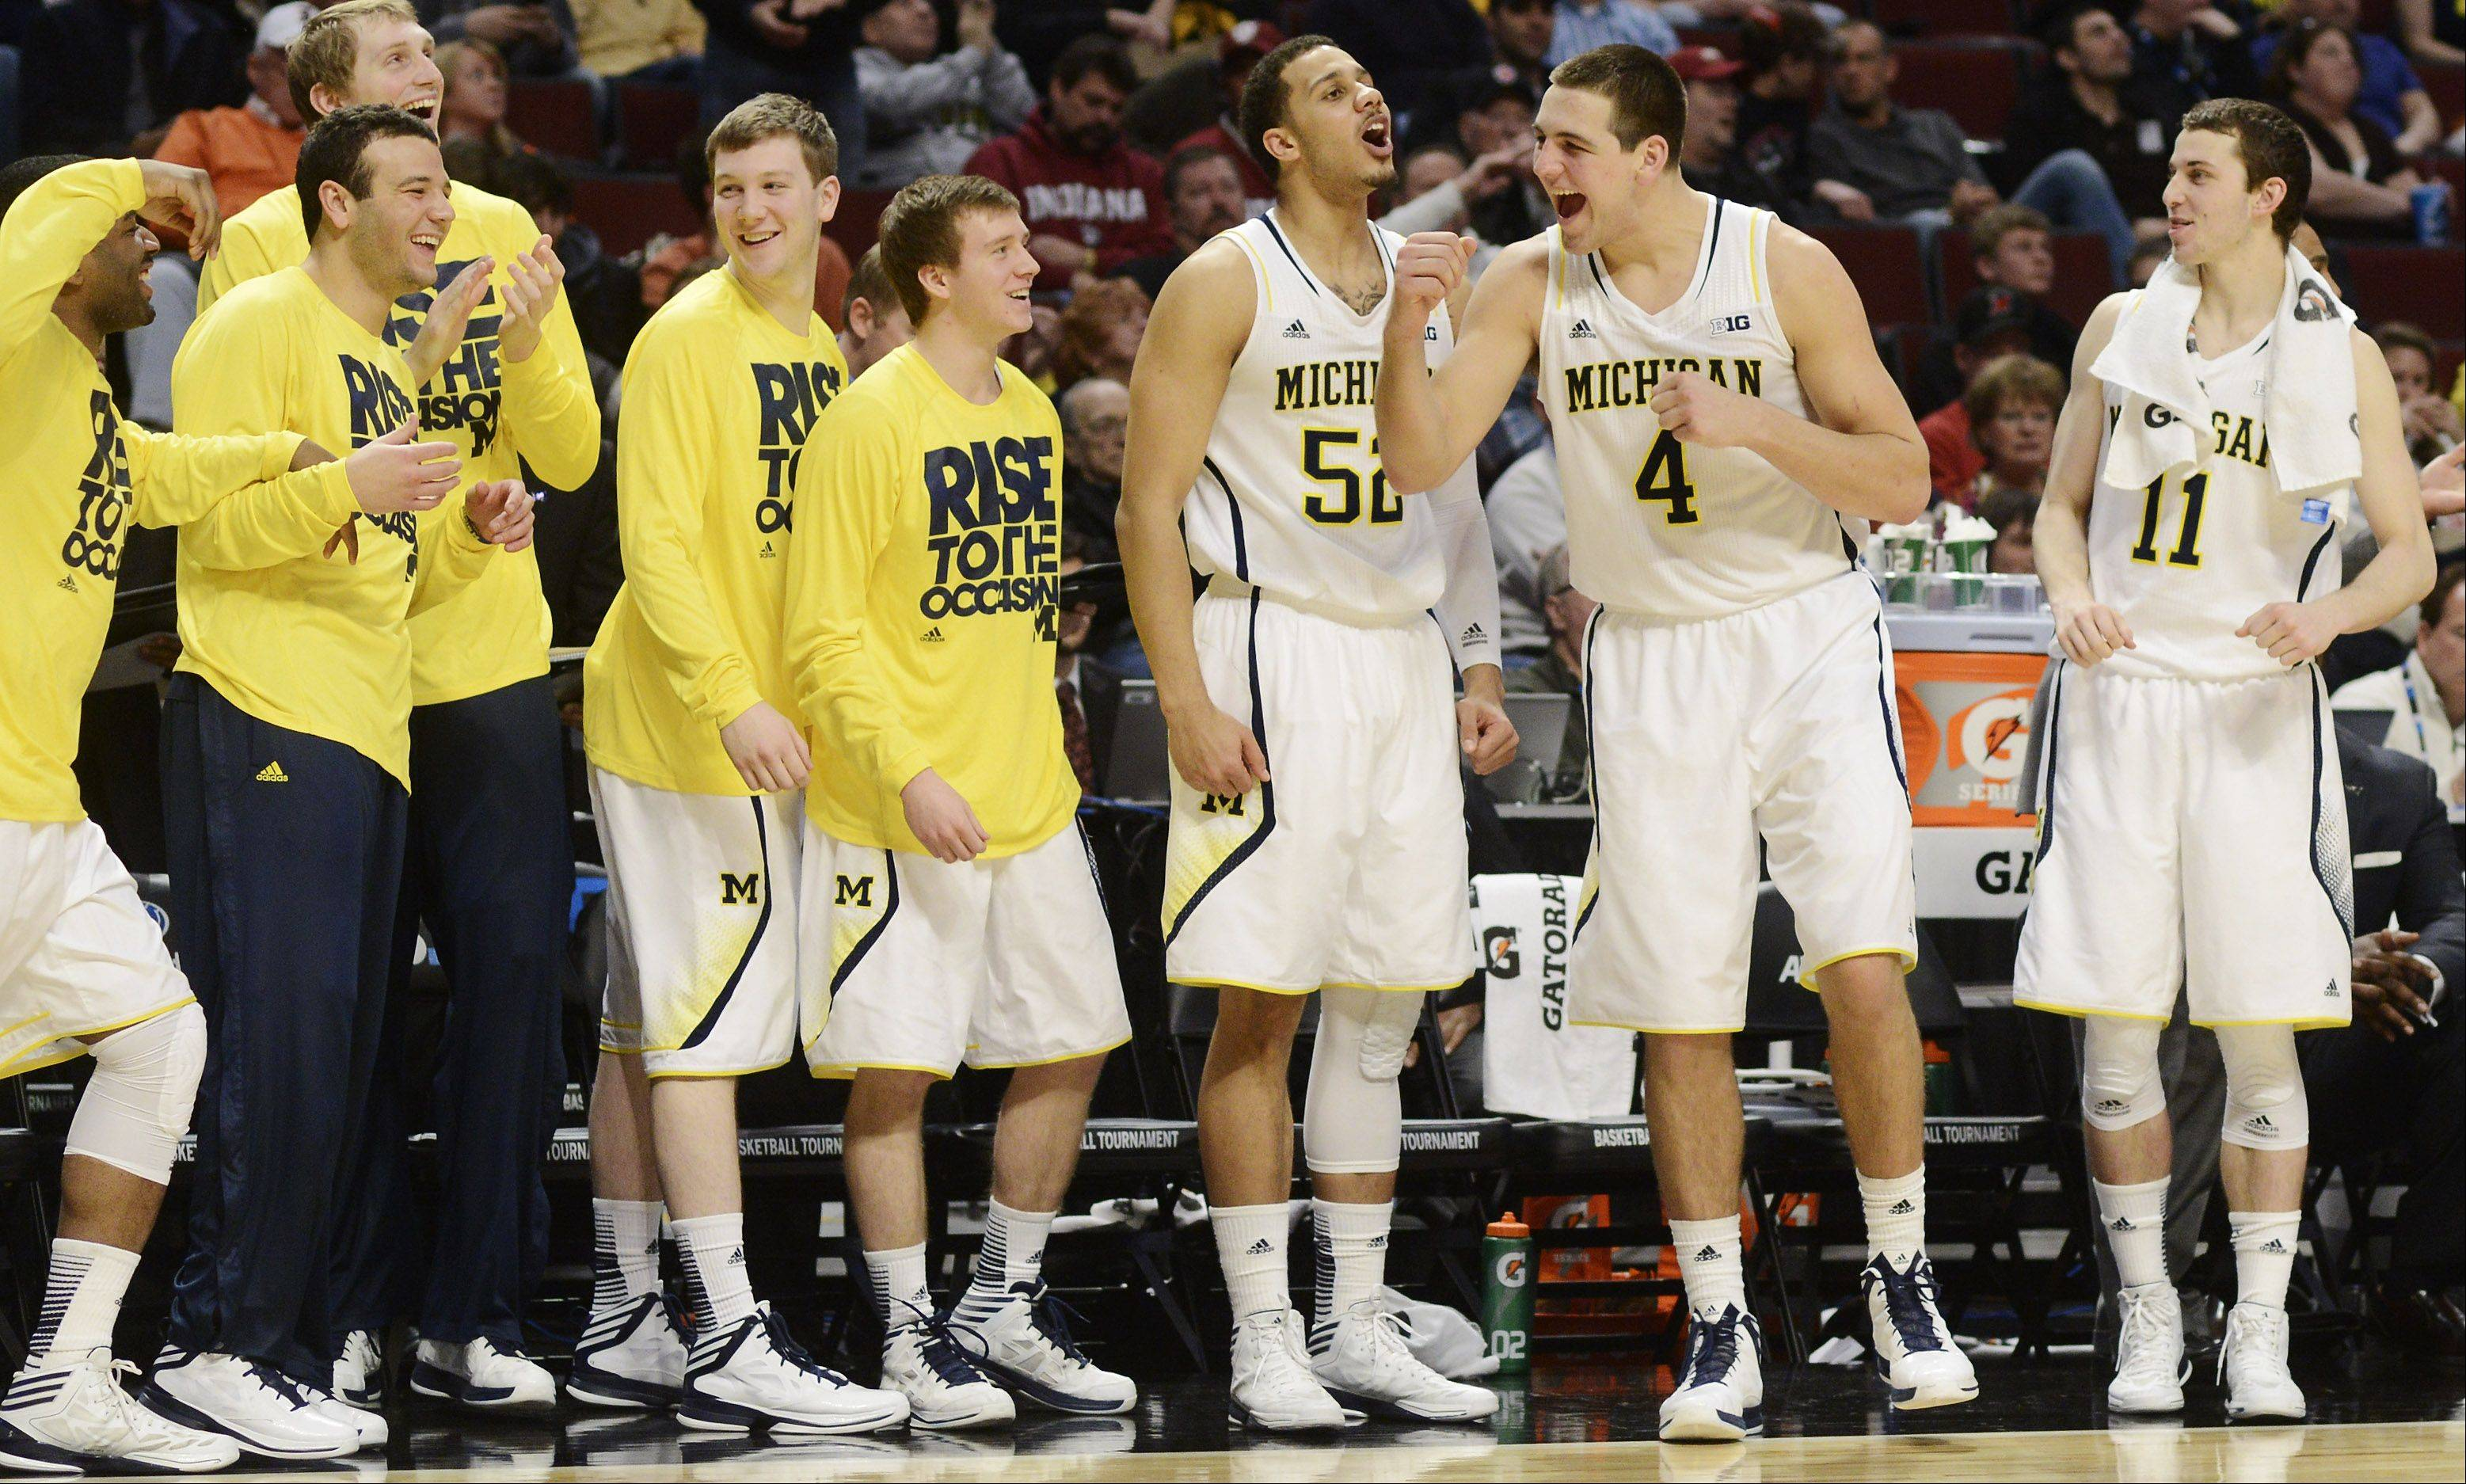 Images: Michigan vs. Penn State Men's Basketball